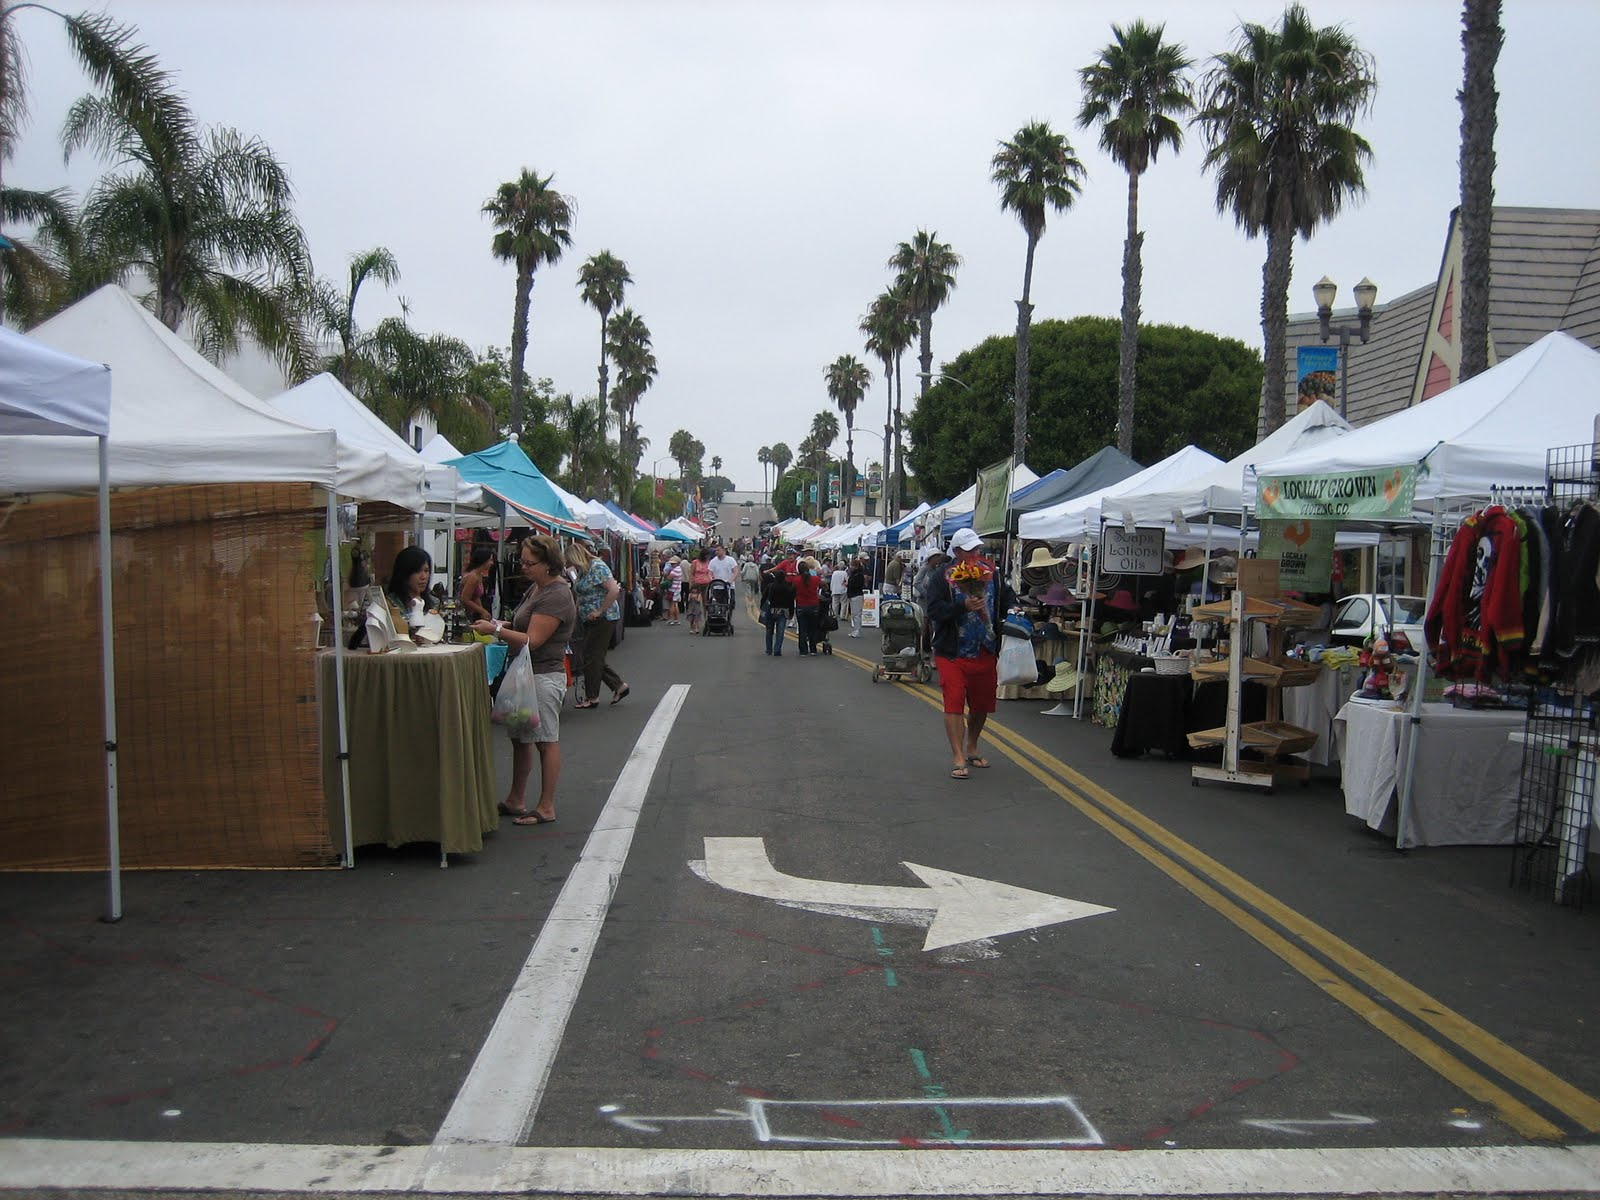 Ahoy y 39 all children oceanside farmer 39 s market and street fair for Oceanside fish market